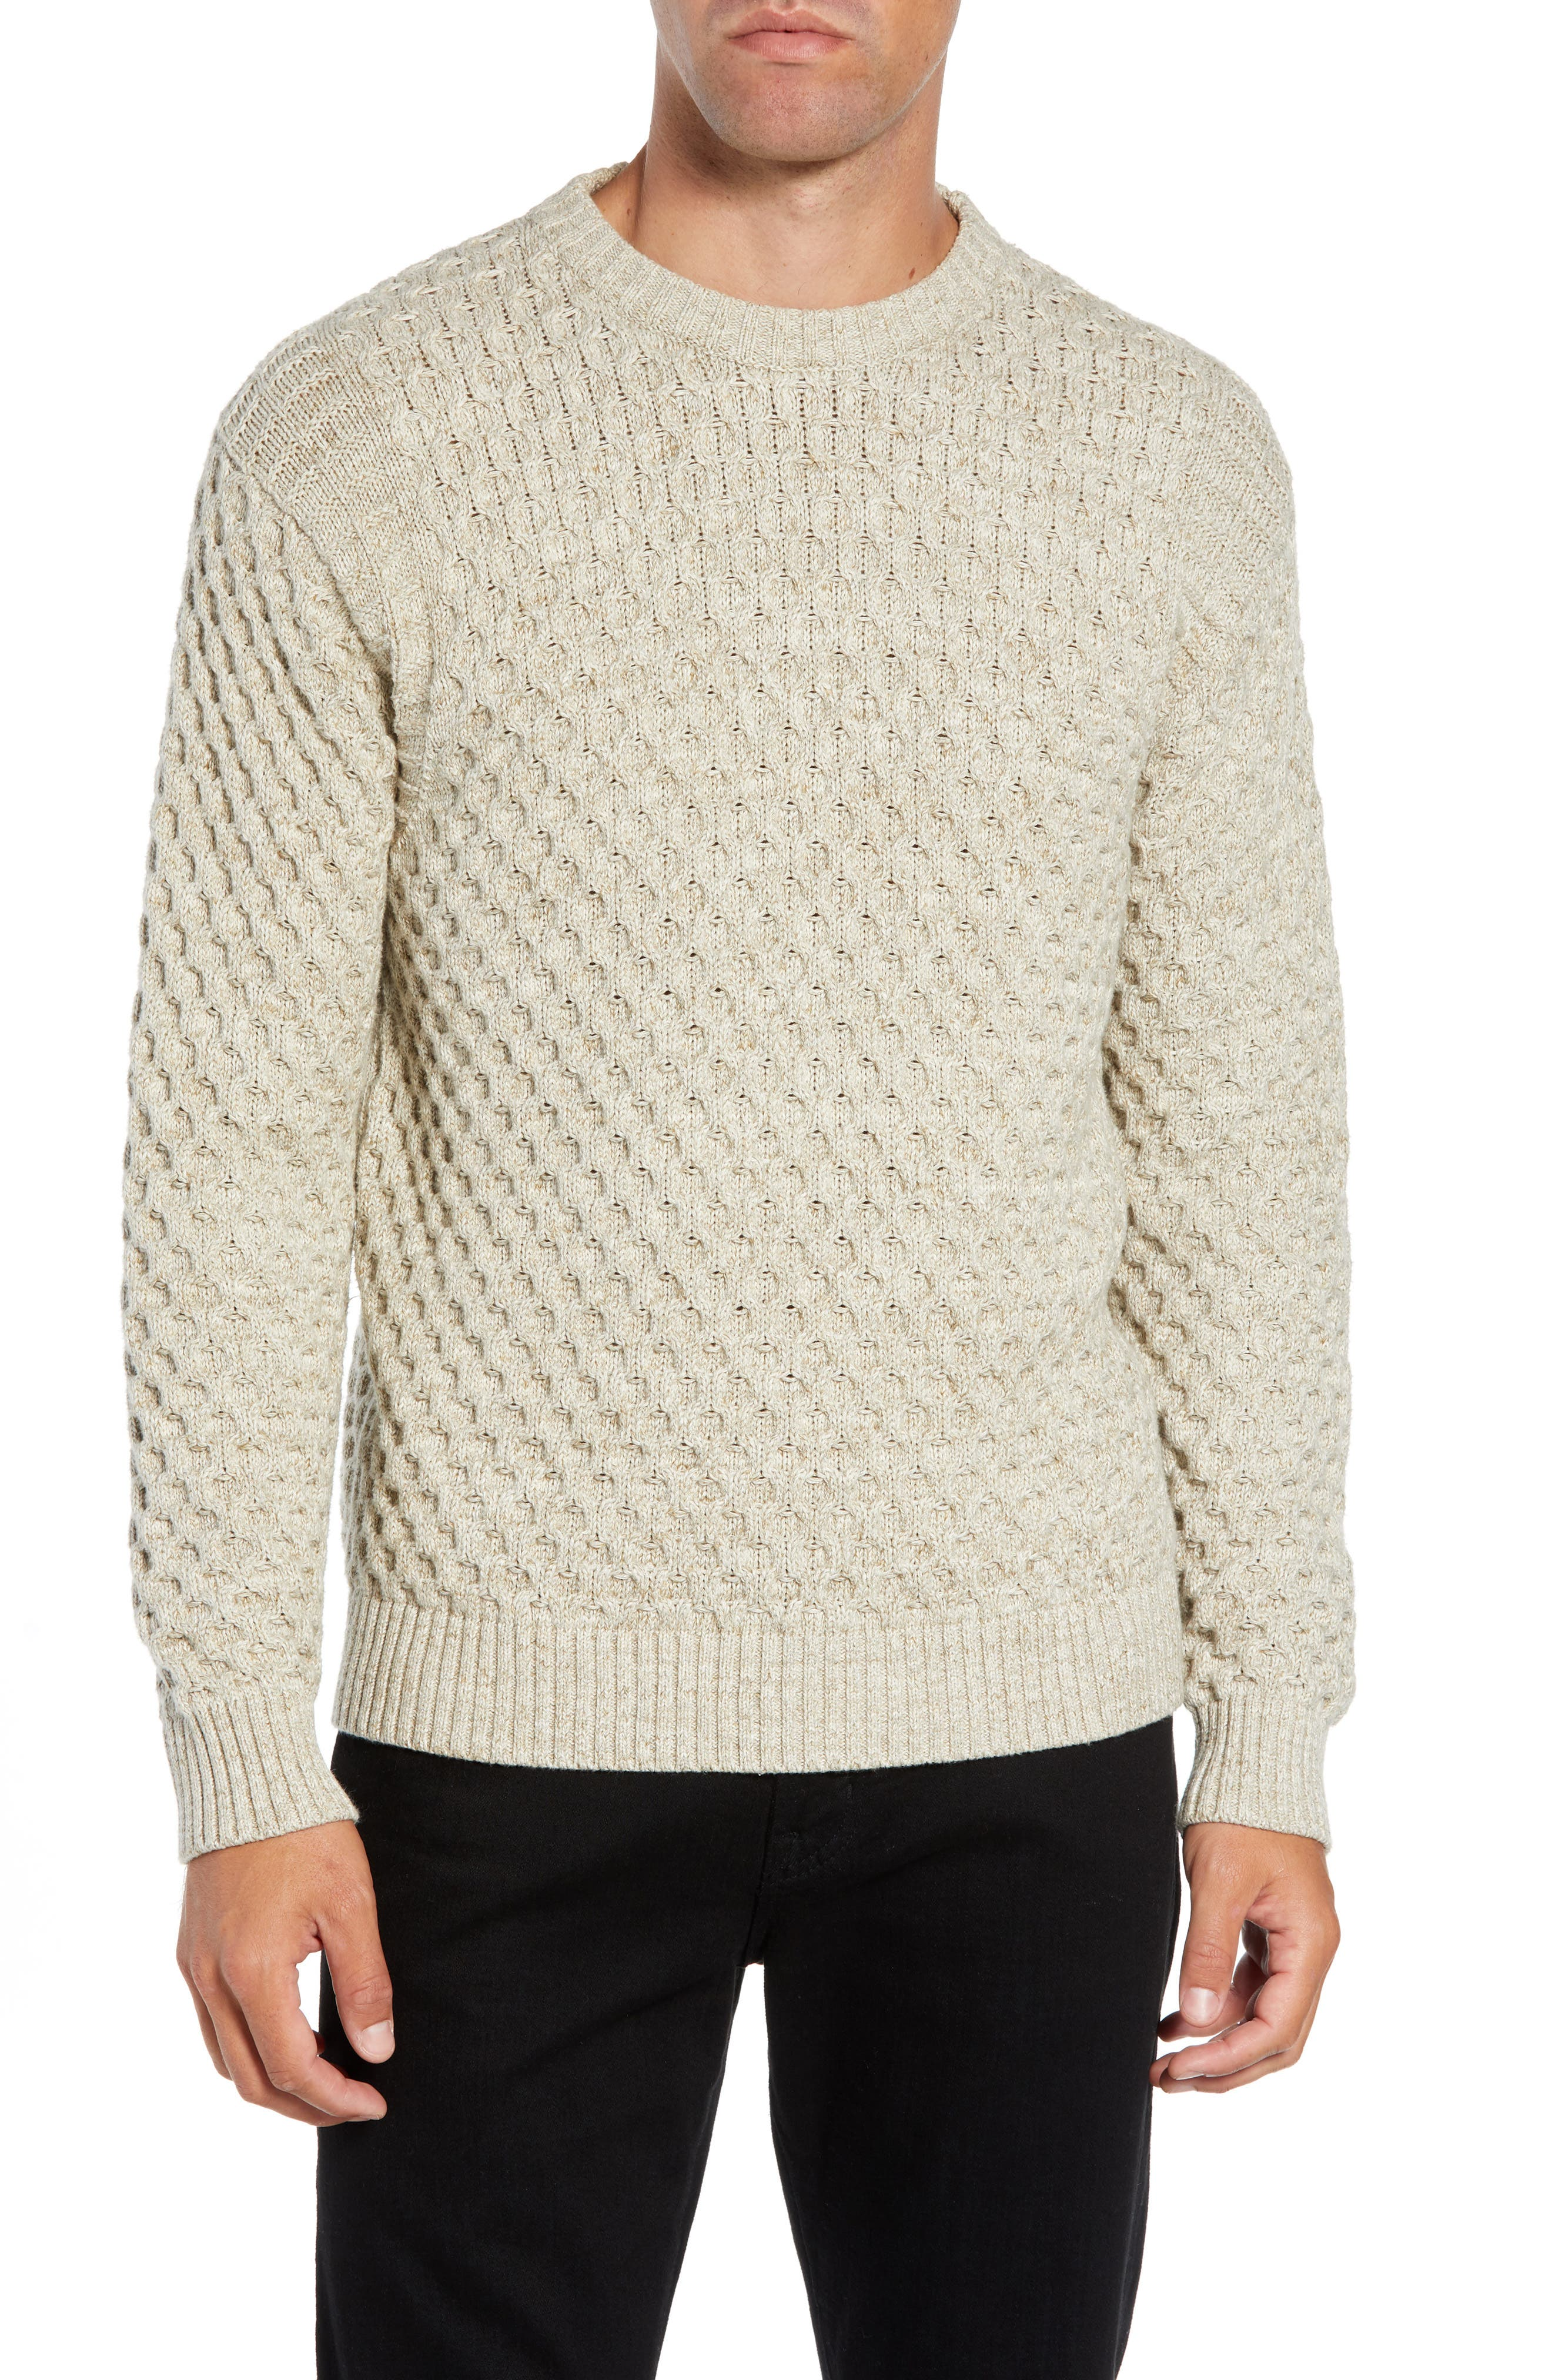 Ethan Fisherman Cable Sweater,                             Main thumbnail 1, color,                             CREAM